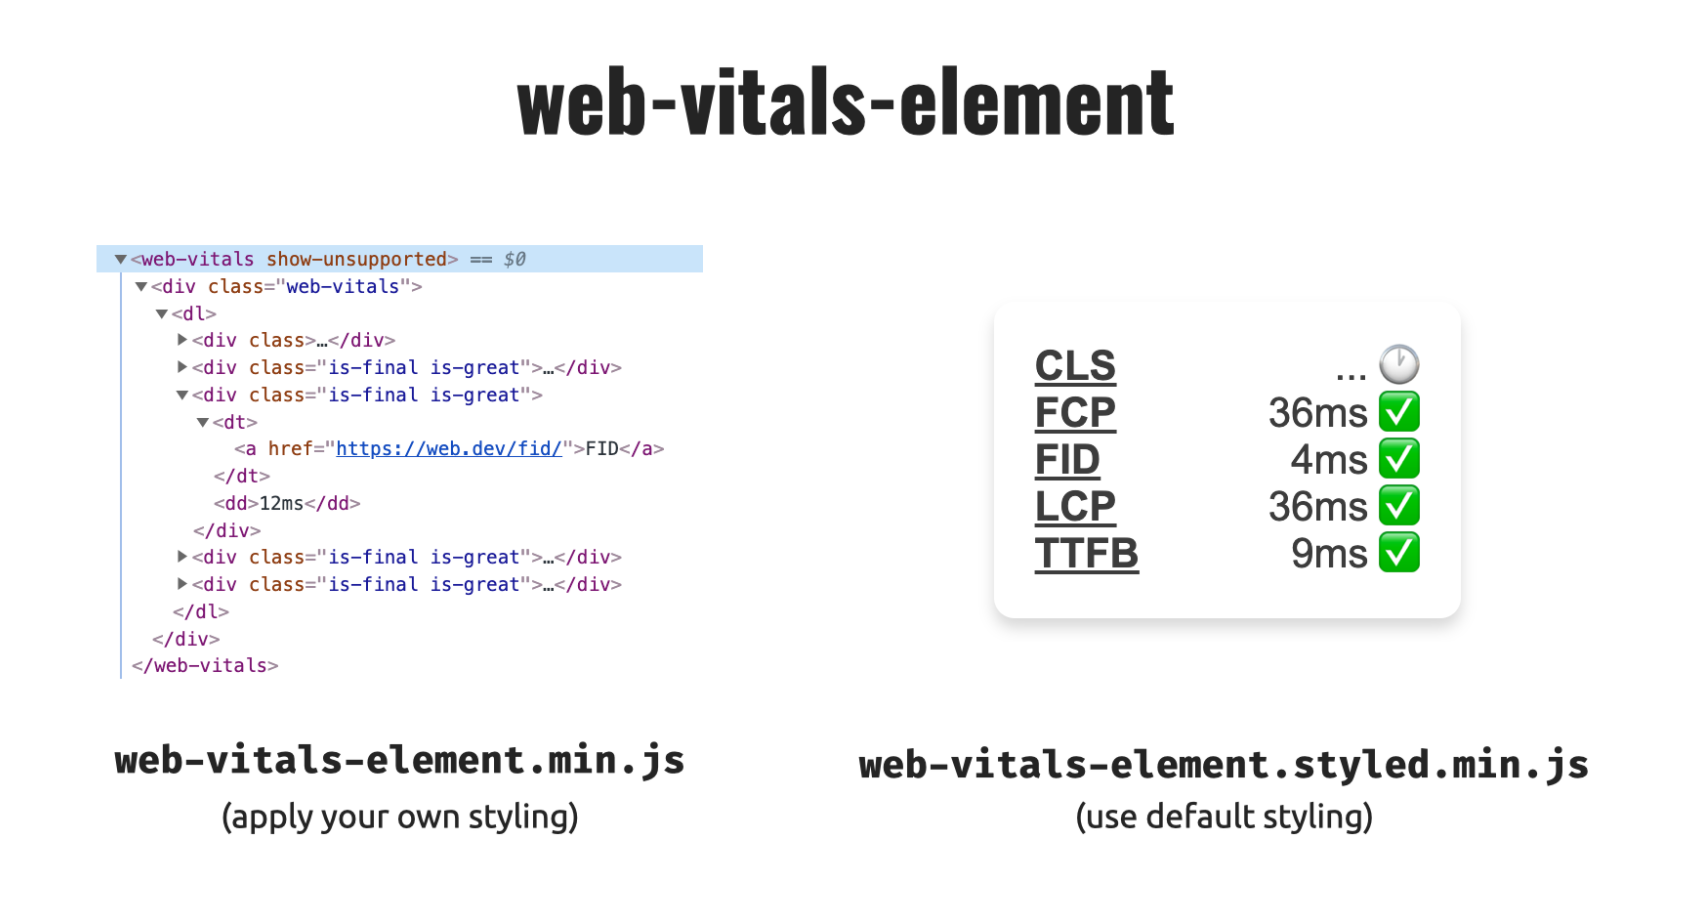 Web-vitals-element example